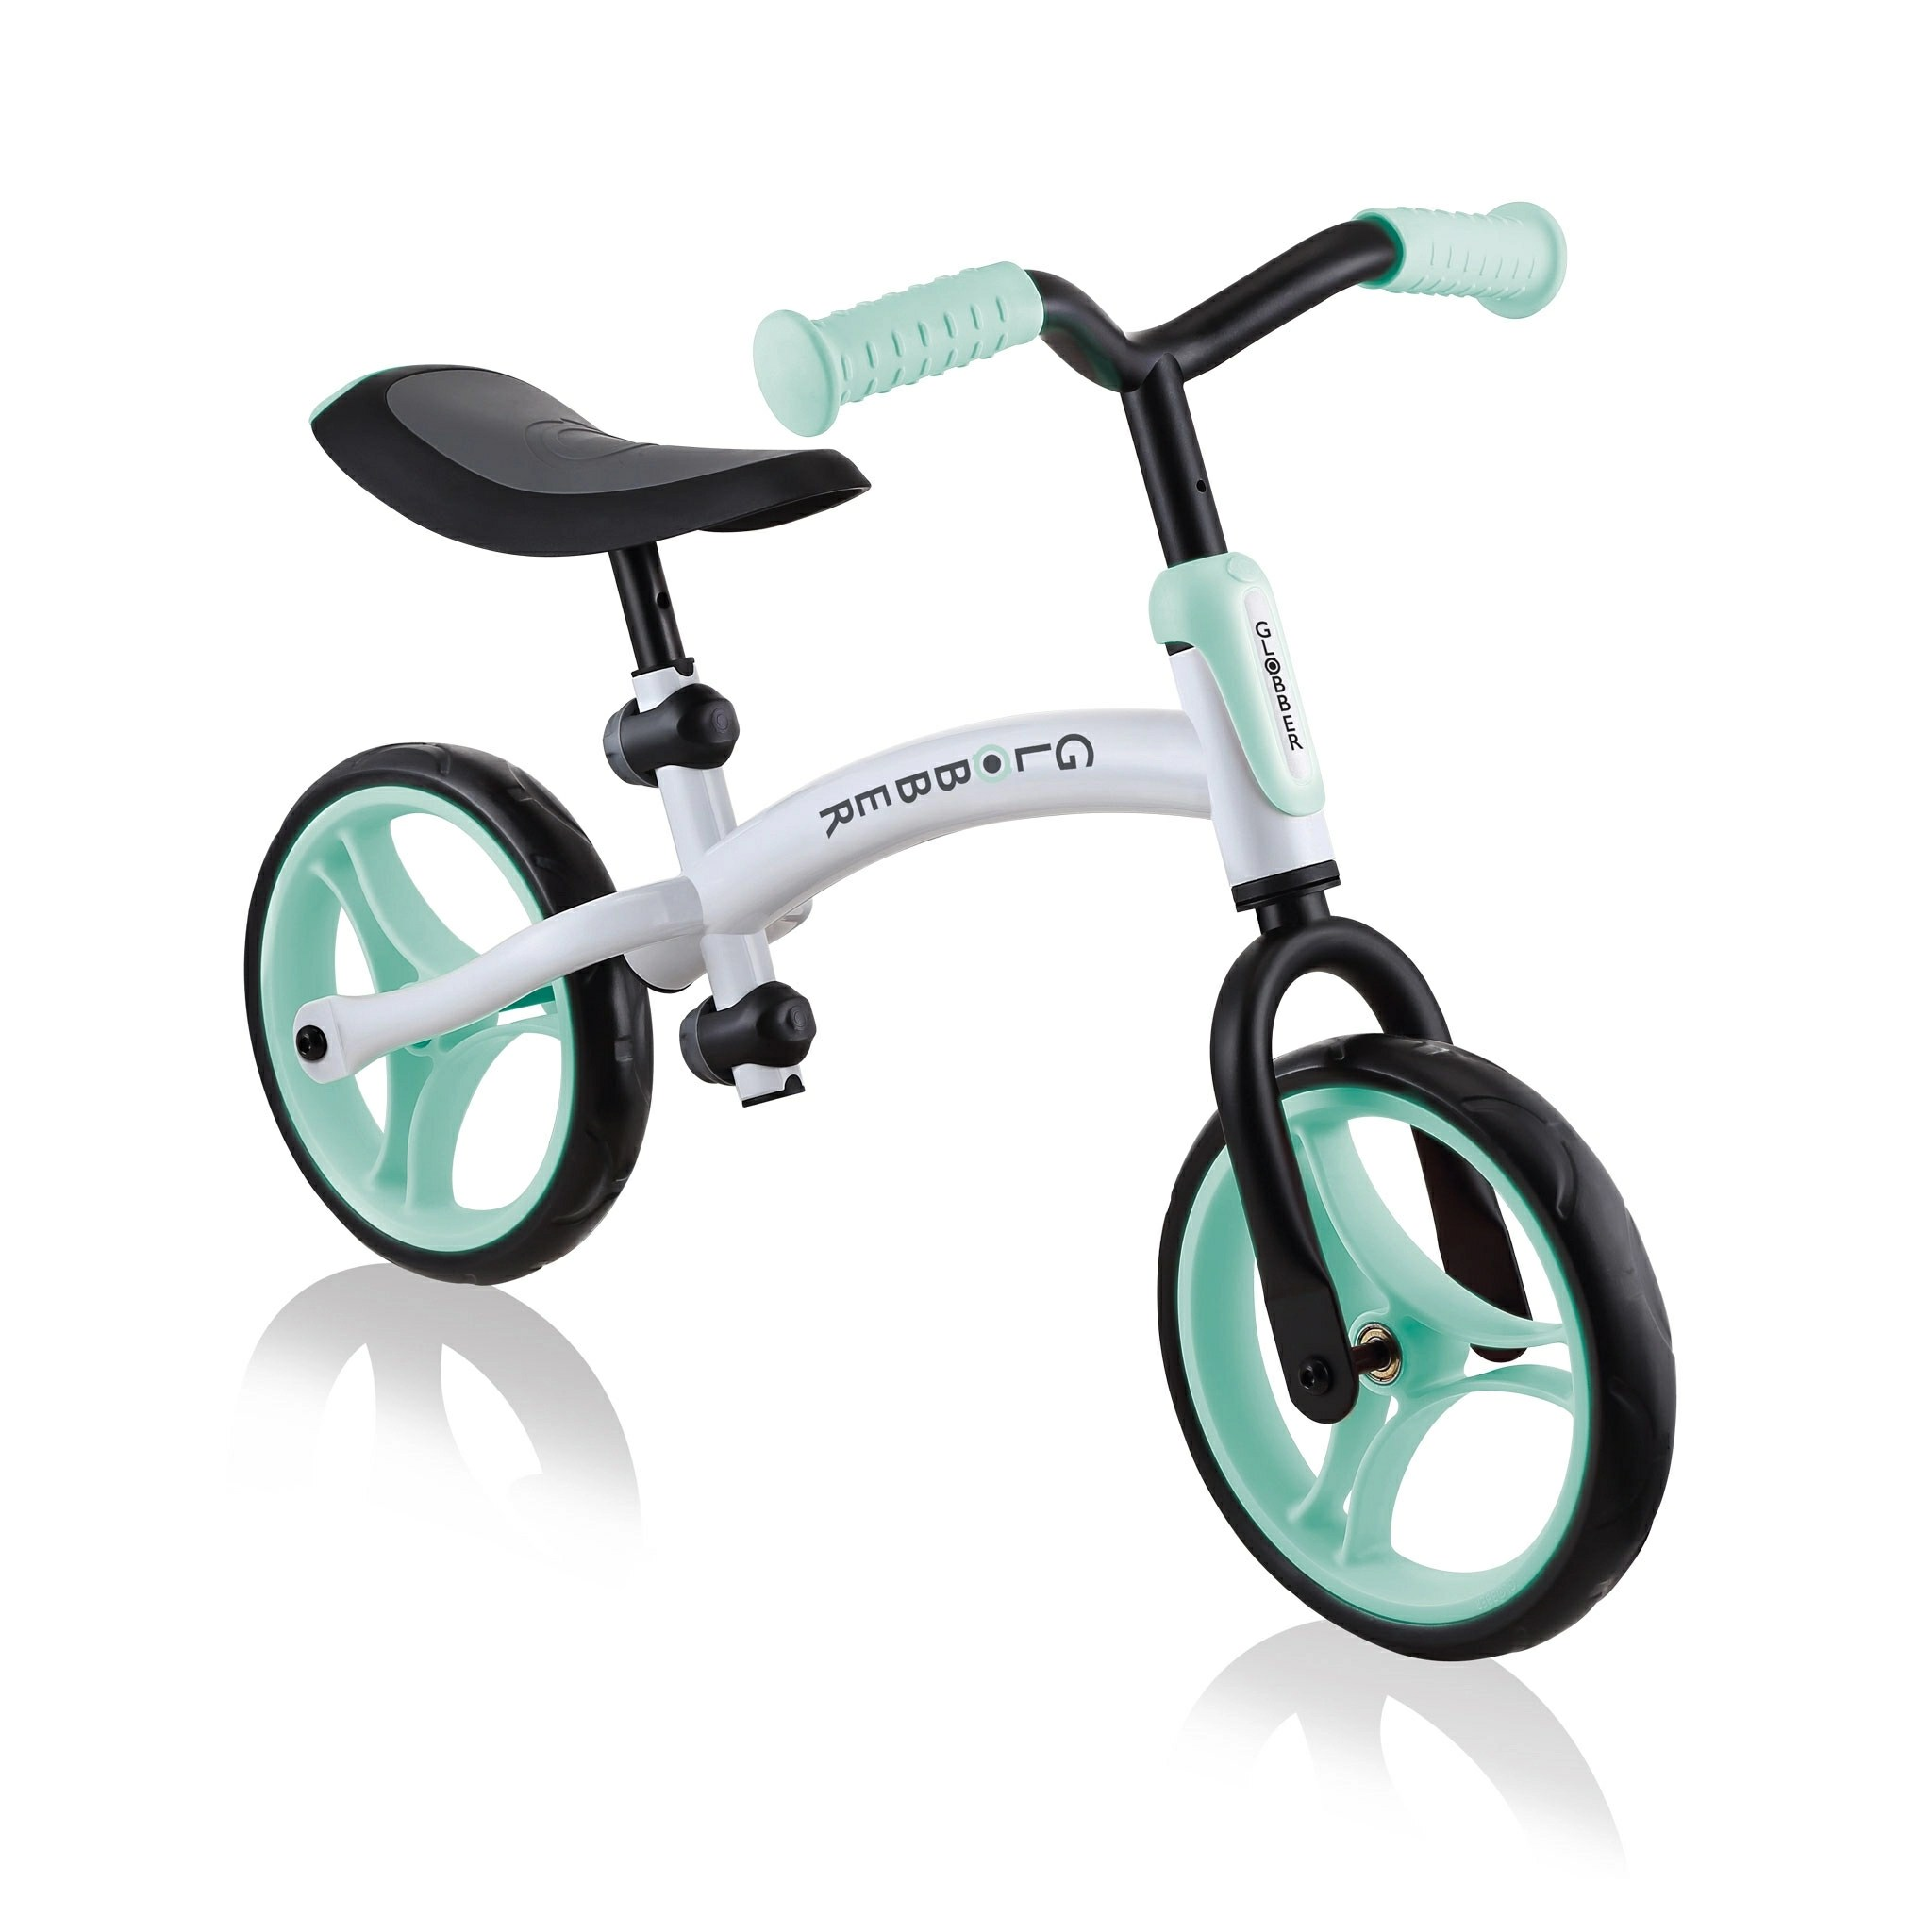 Best balance bike for toddlers aged 2-5 – Globber GO BIKE DUO